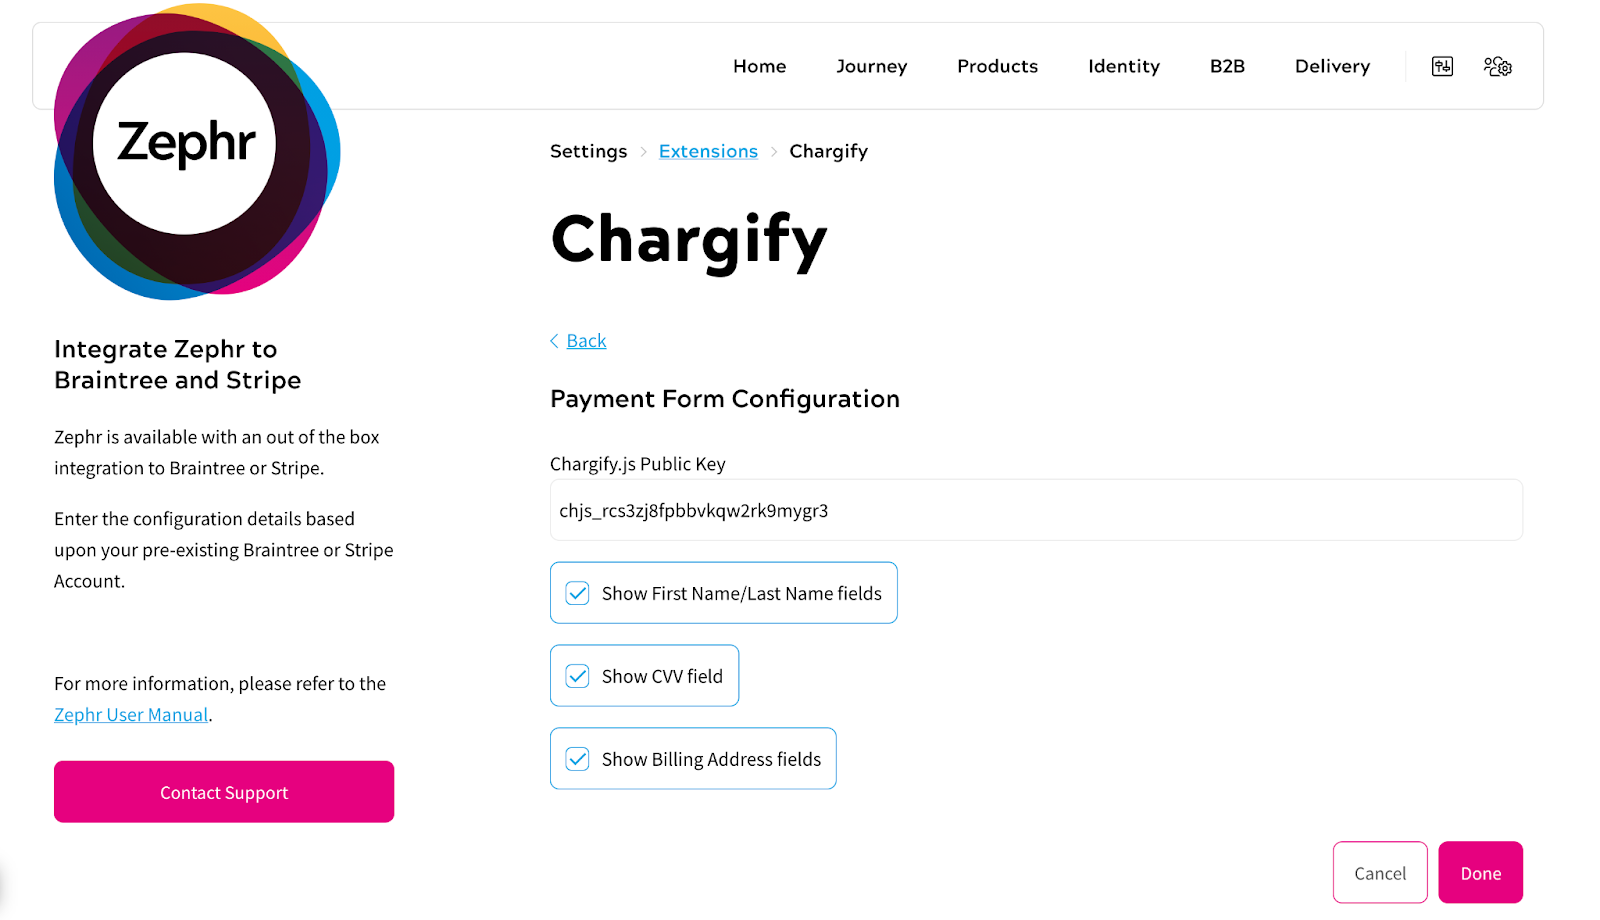 Chargify - Payment Form Config